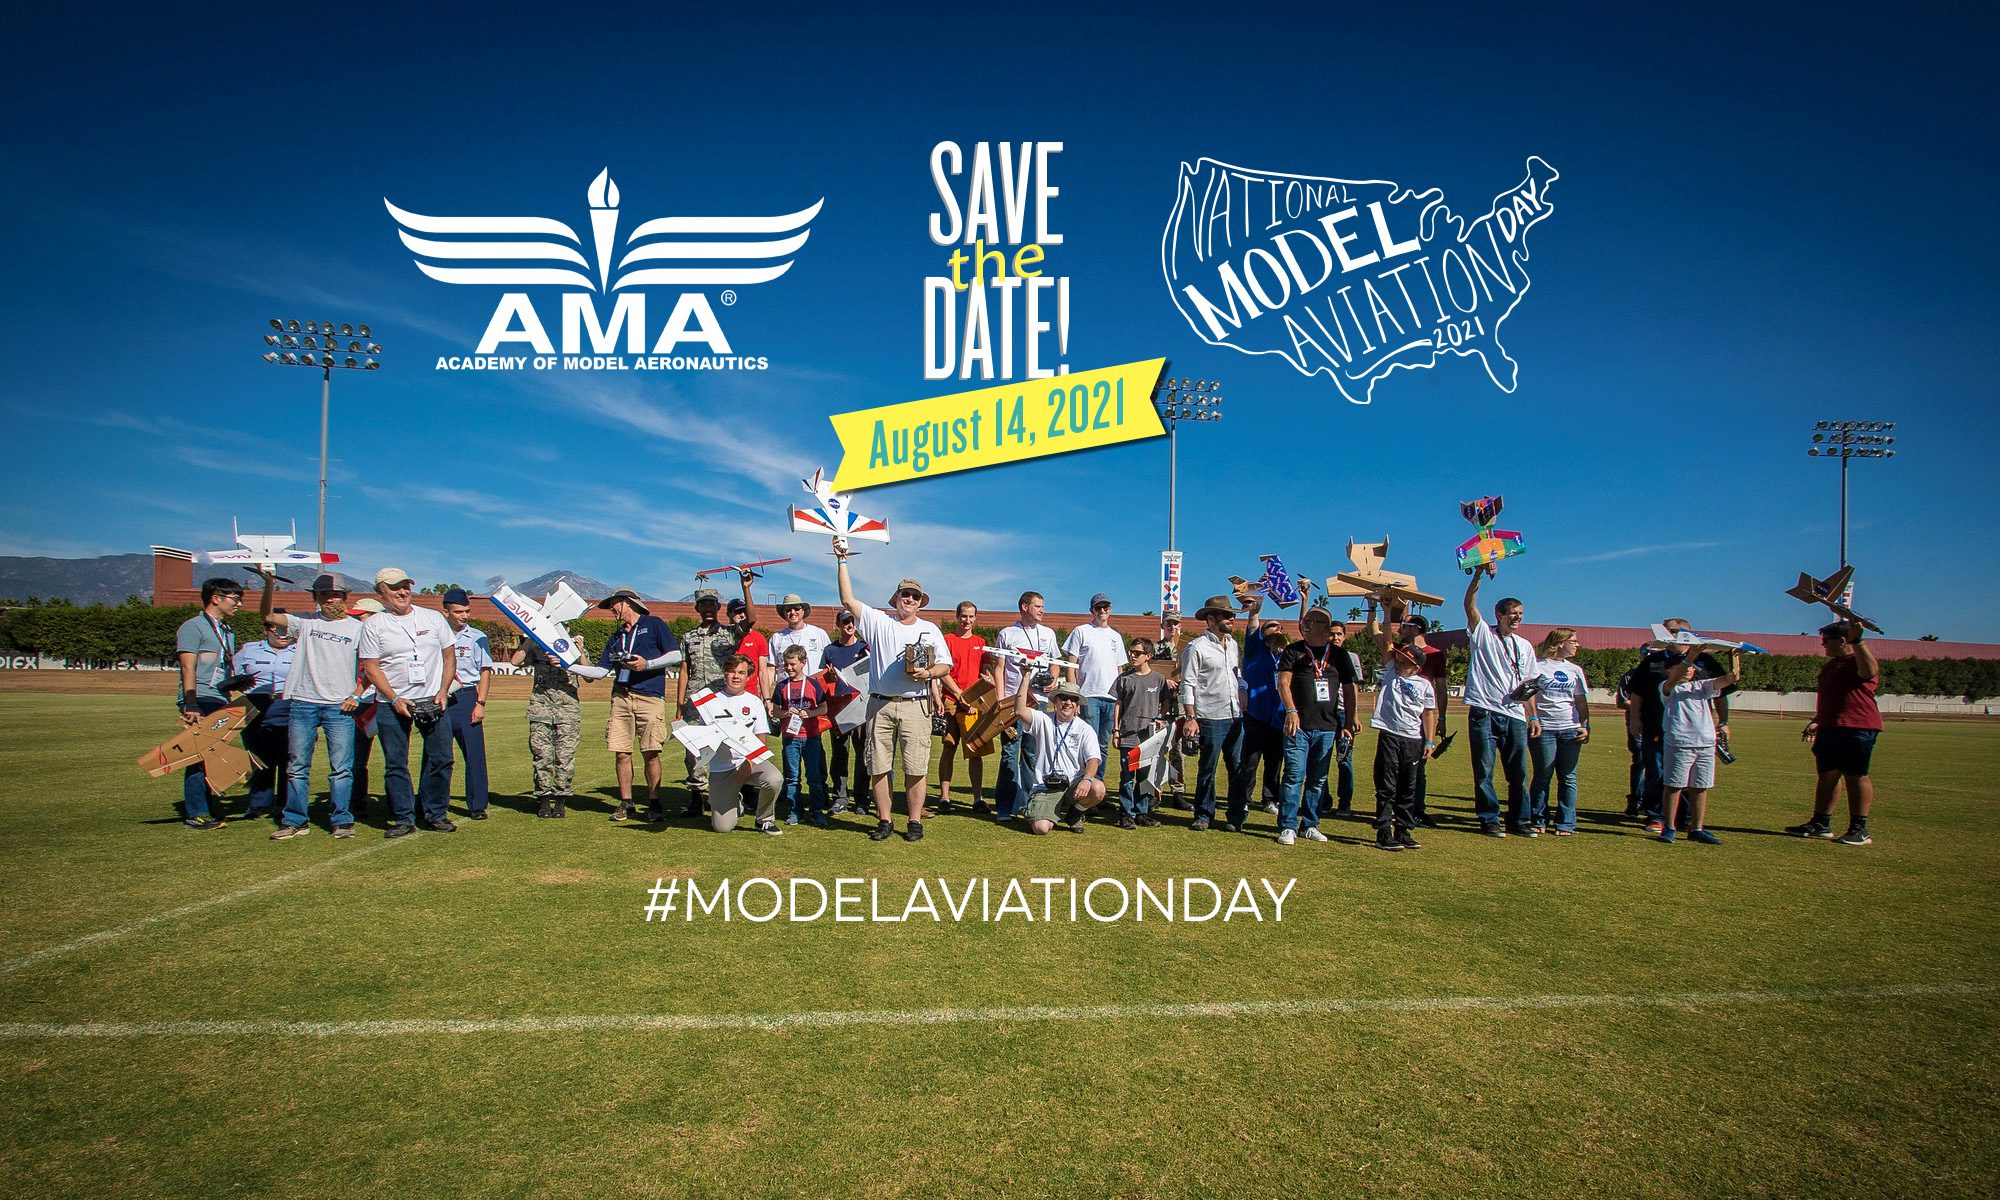 National Model Aviation Day